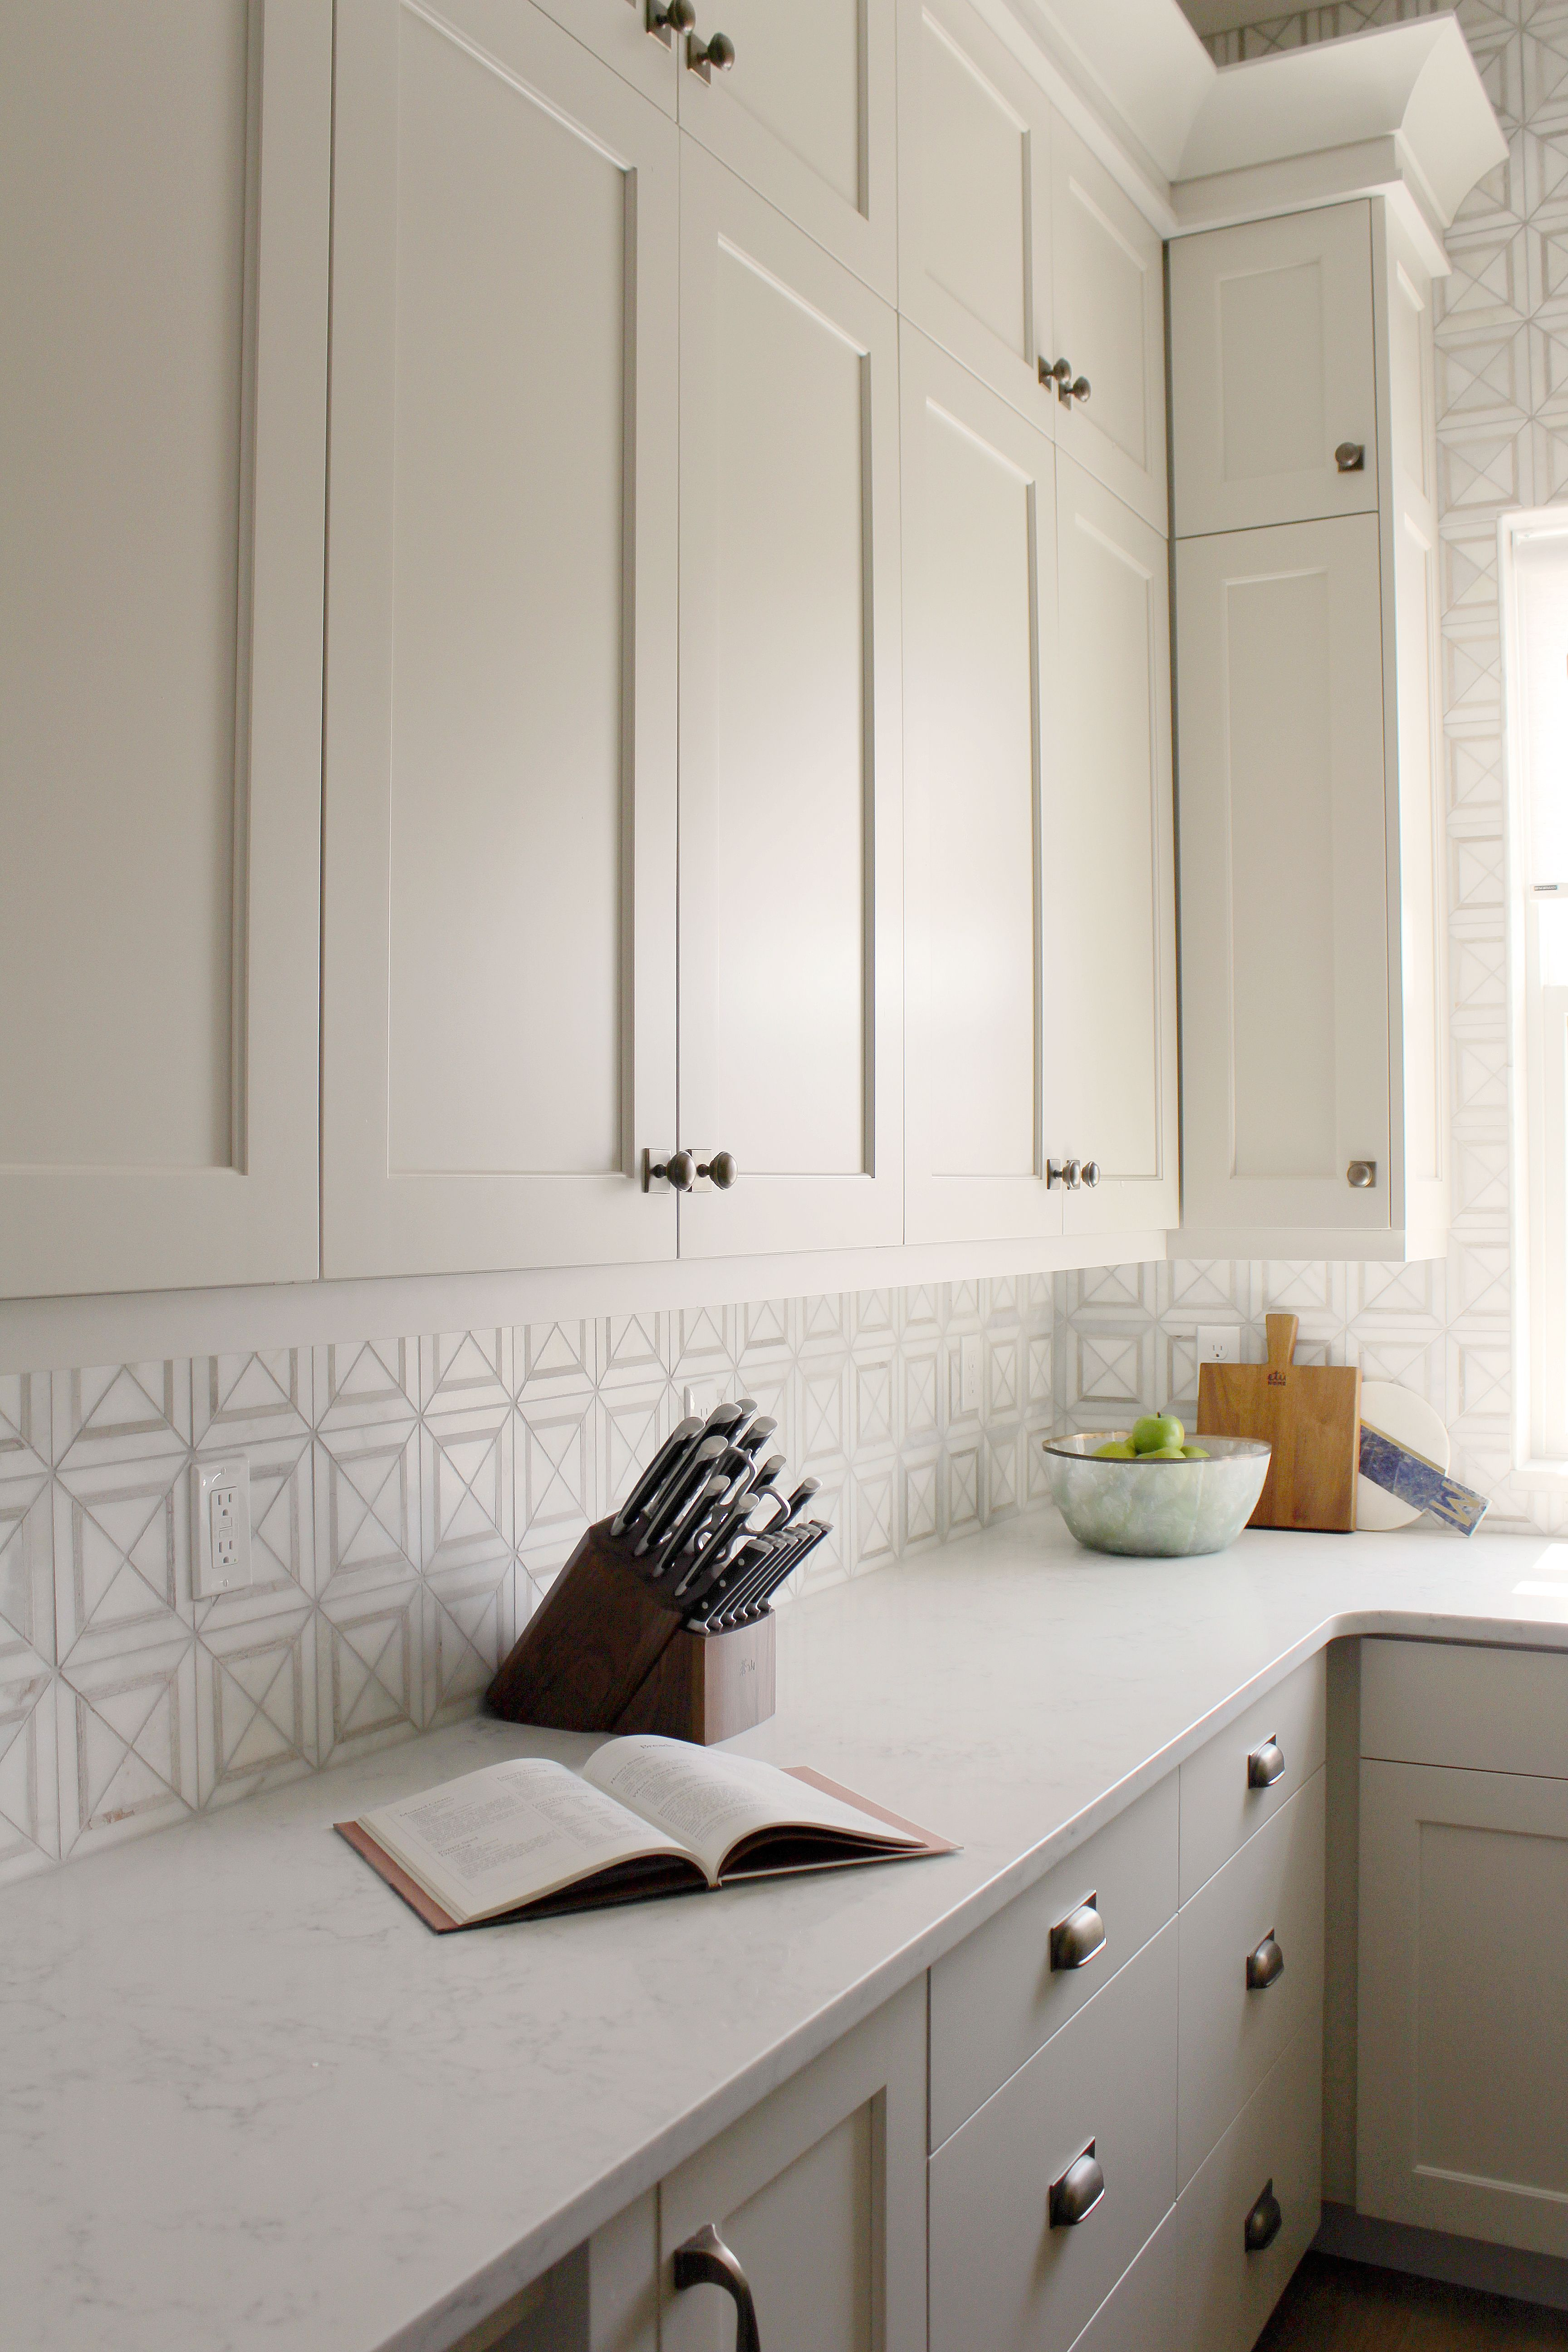 Gray Kitchen Cabinets Benjamin Moore Cabinet Color Is Benjamin Moore Edgecomb Gray Cabinet Paint